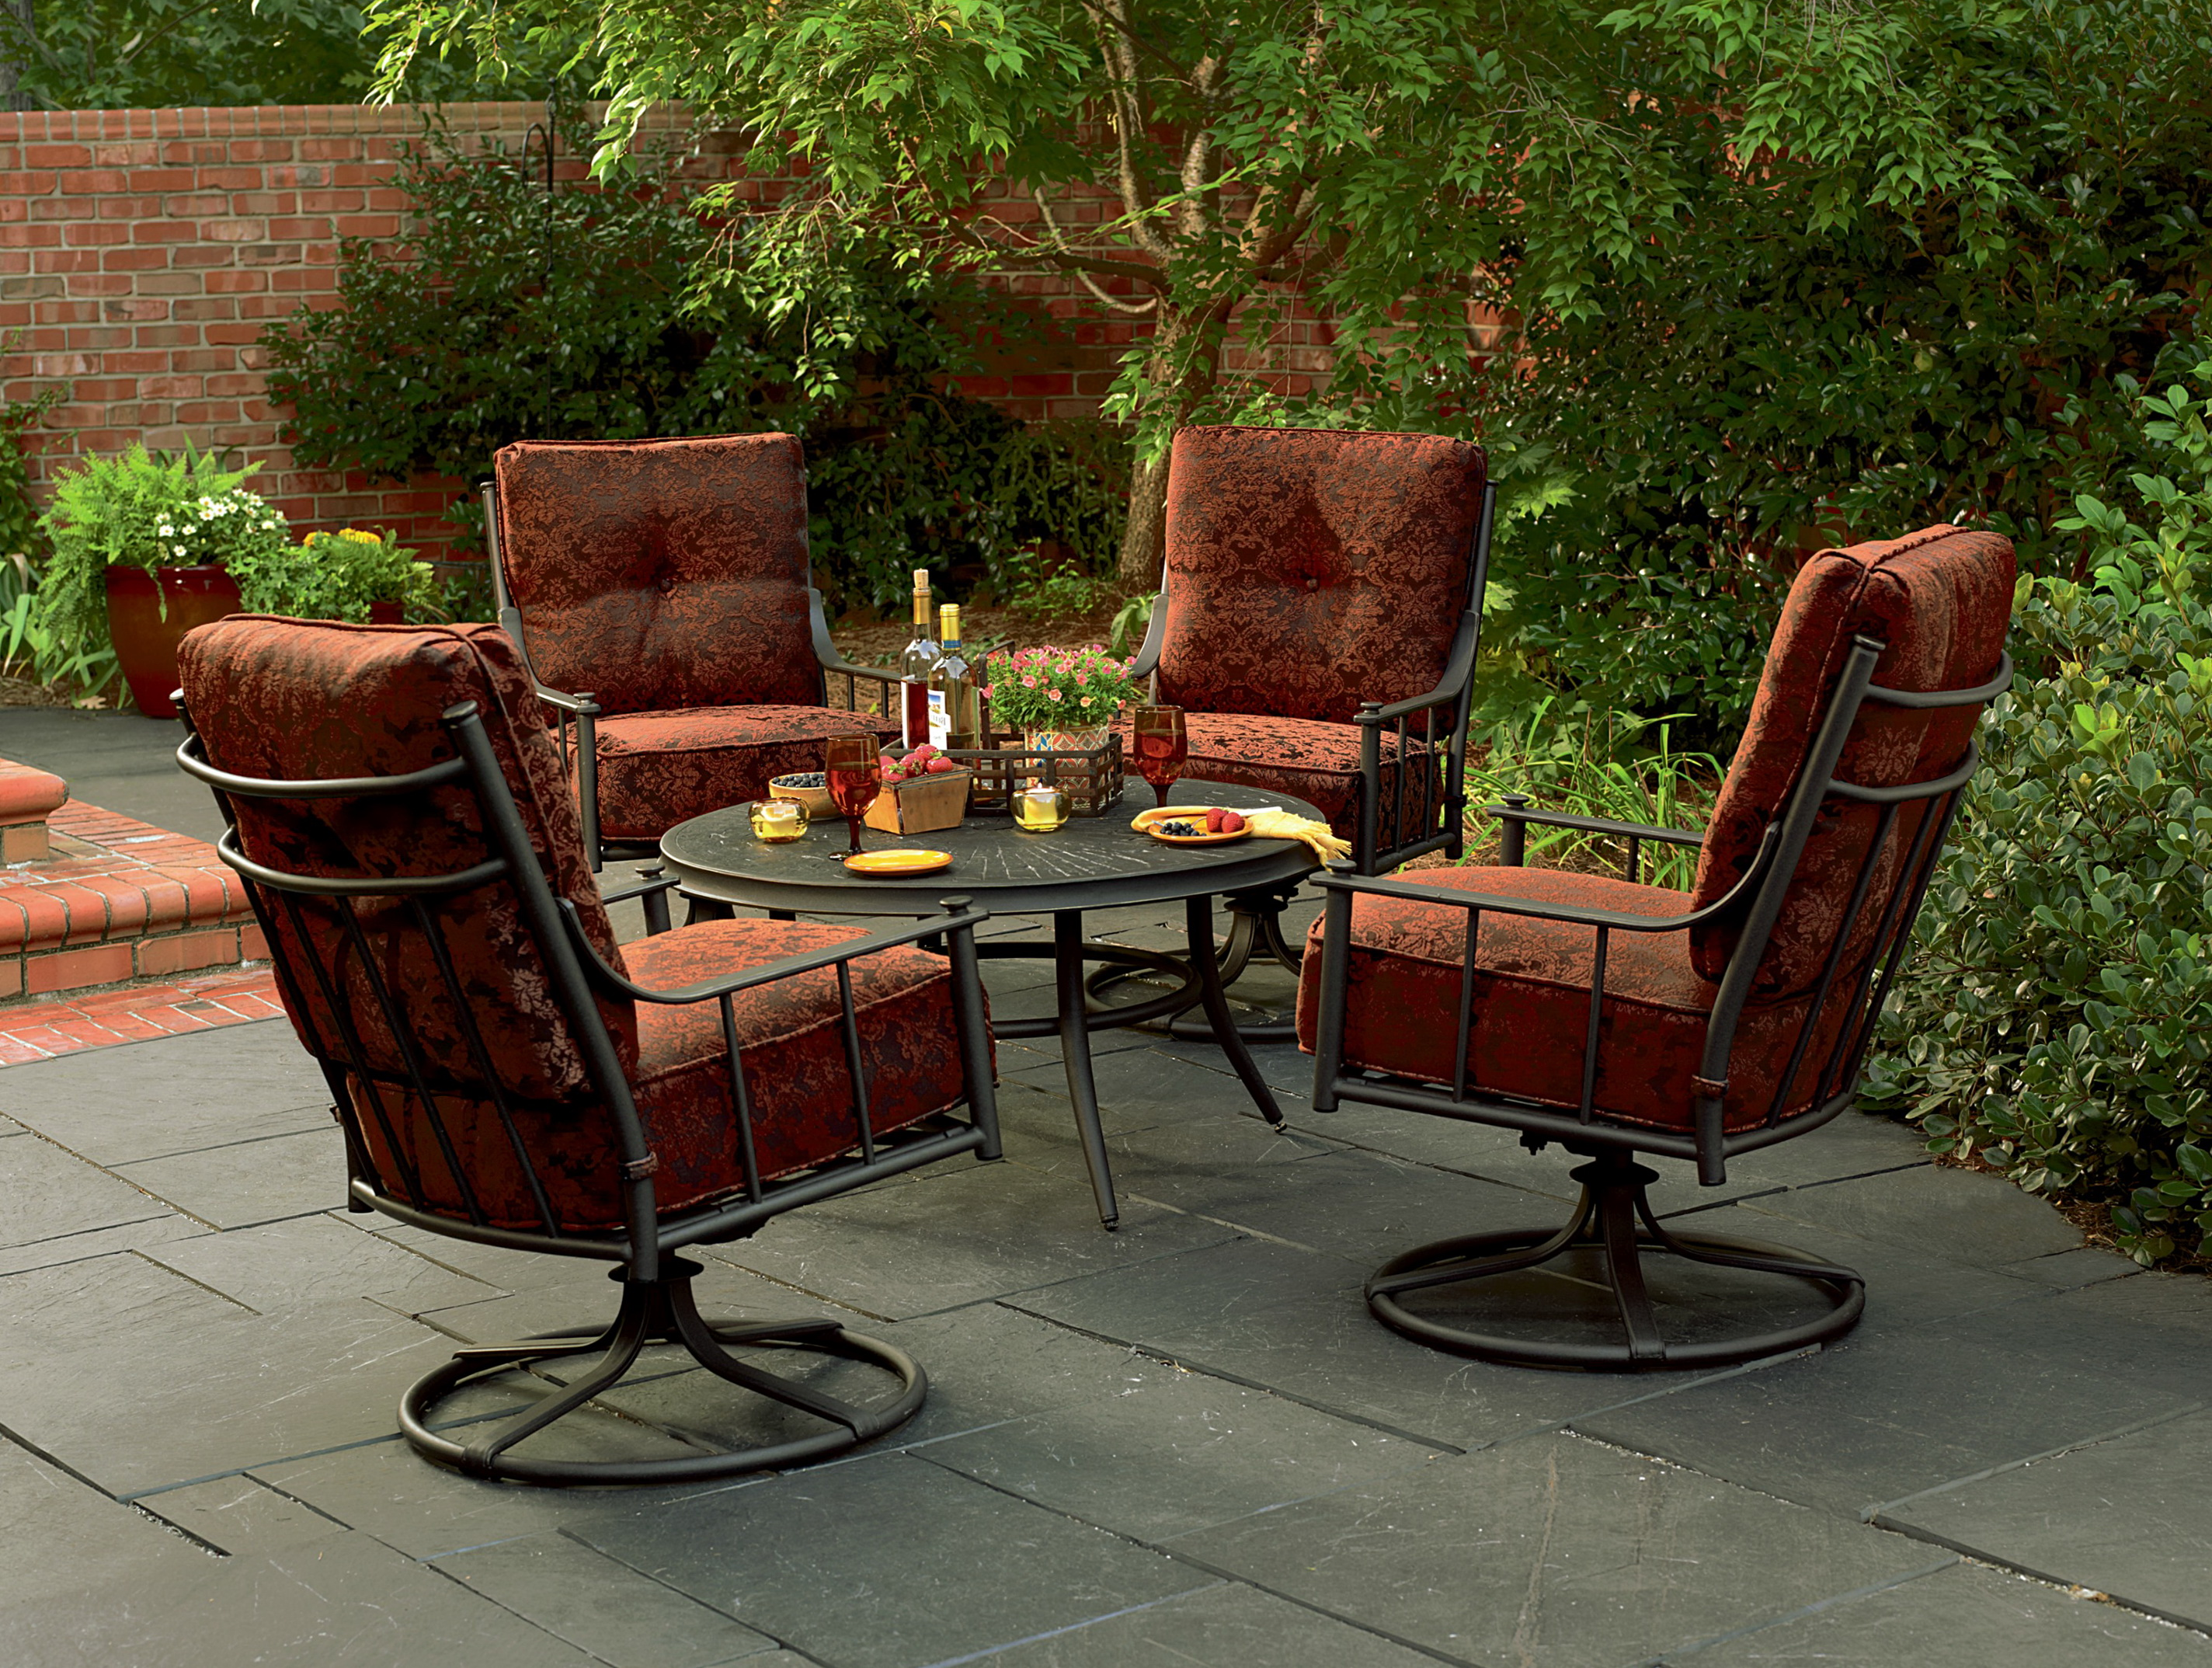 dining chair cushions kmart best office for spinal fusion patio clearance home design ideas